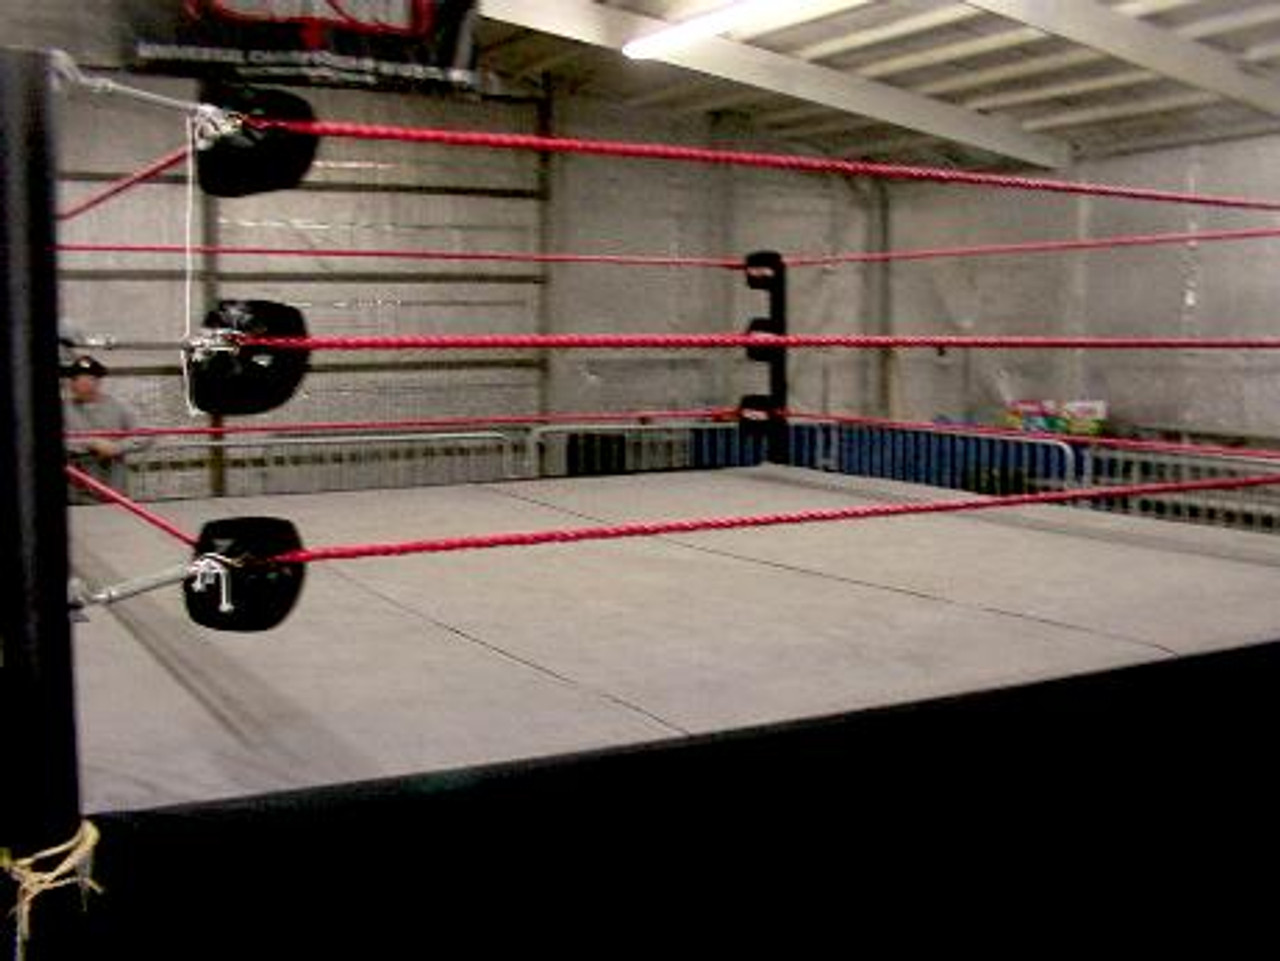 16 Foot Professional Wrestling Boxing Ring Canvas Cover Black Color